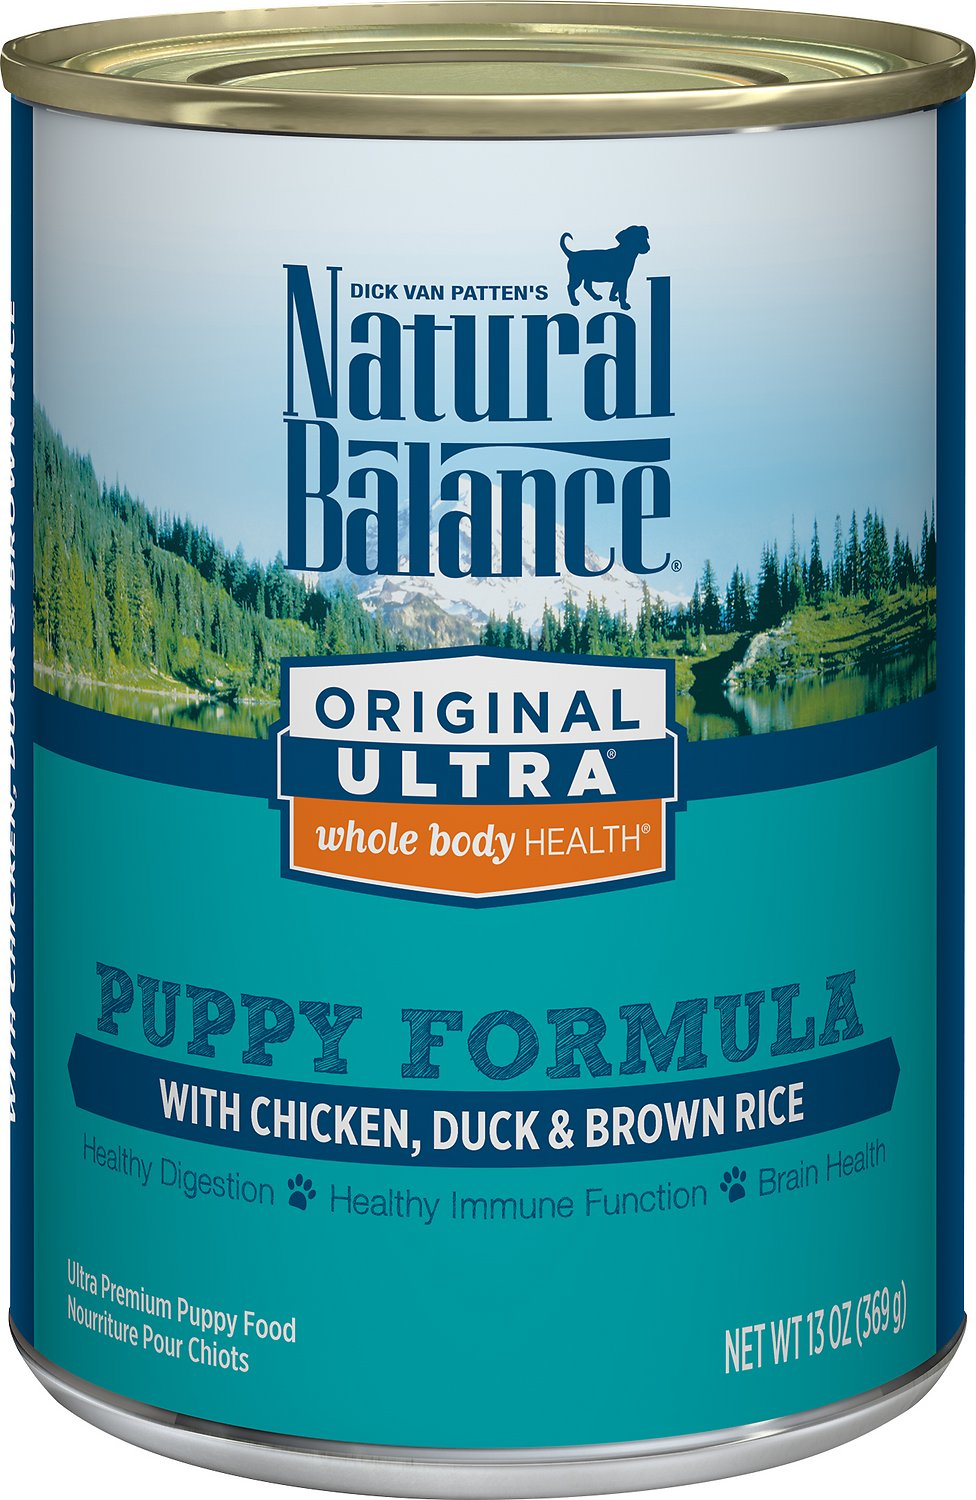 Natural Balance Original Ultra Whole Body Health Puppy Formula Chicken, Duck & Brown Rice Canned Dog Food, 13-oz